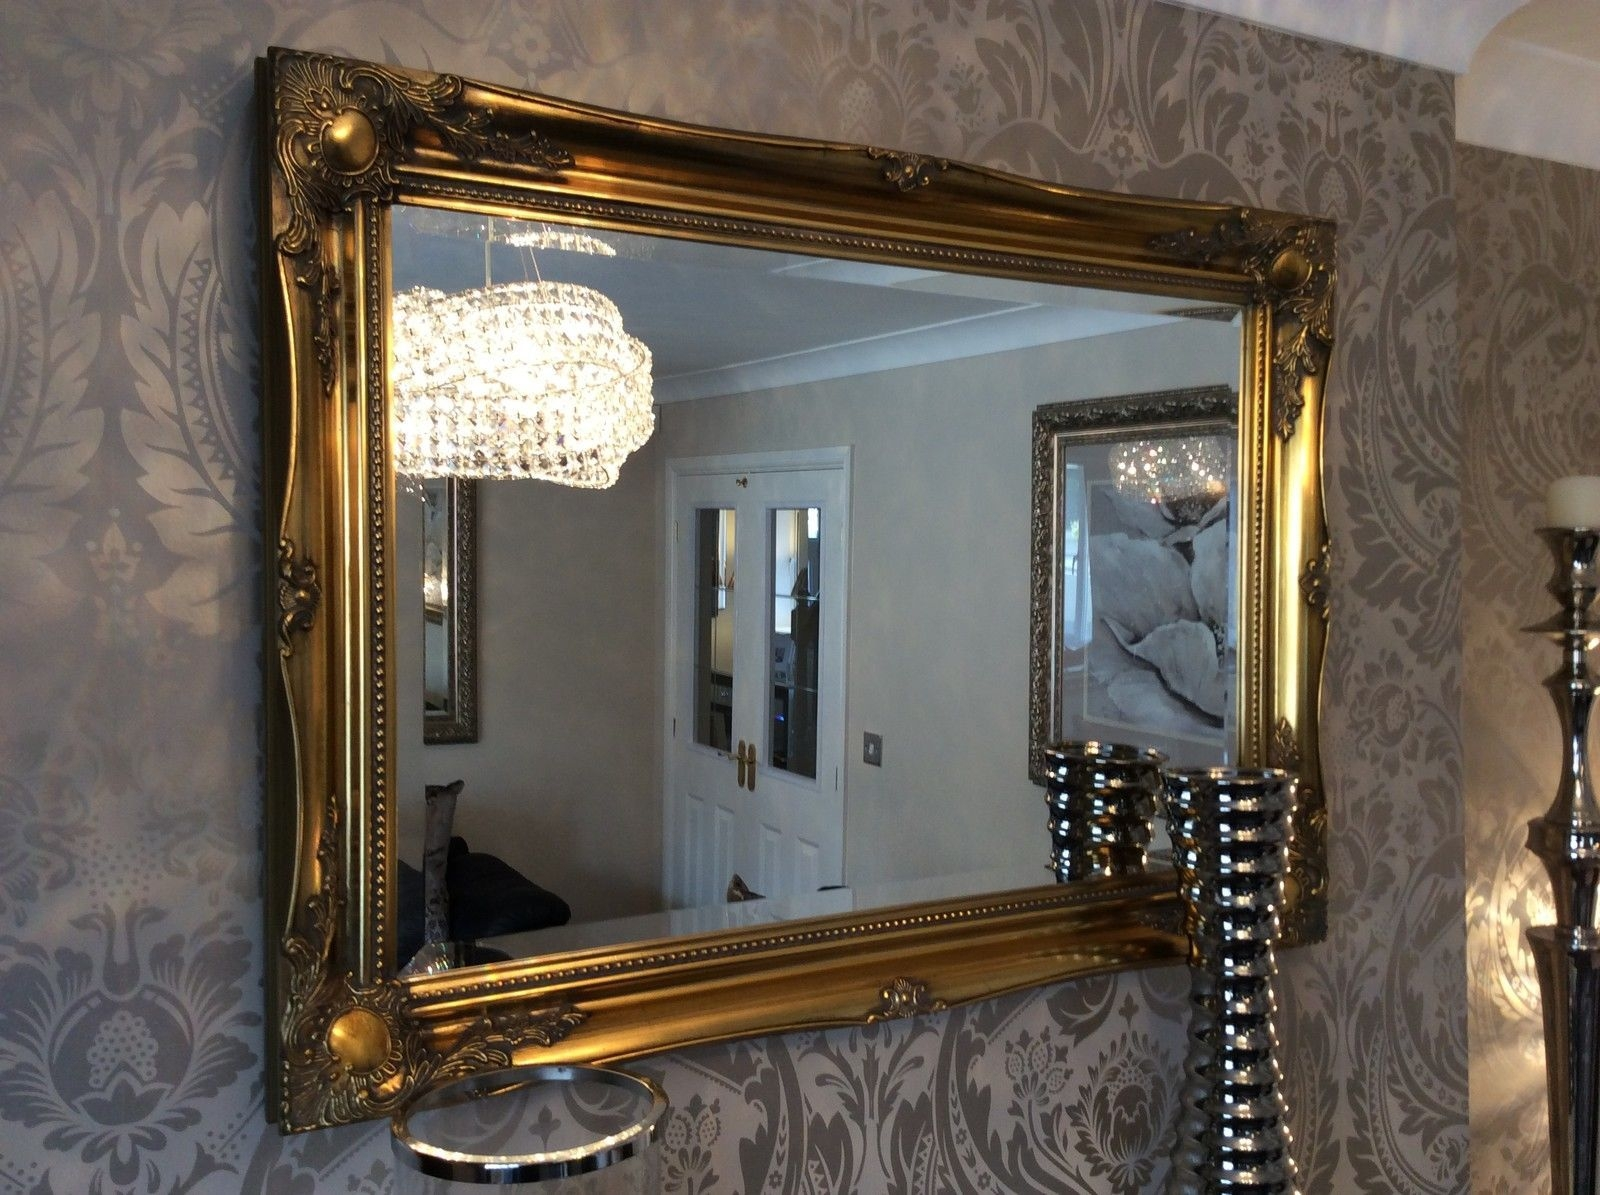 Large Antique Gold Mirror Throughout Large Antique Gold Mirror (Image 6 of 15)